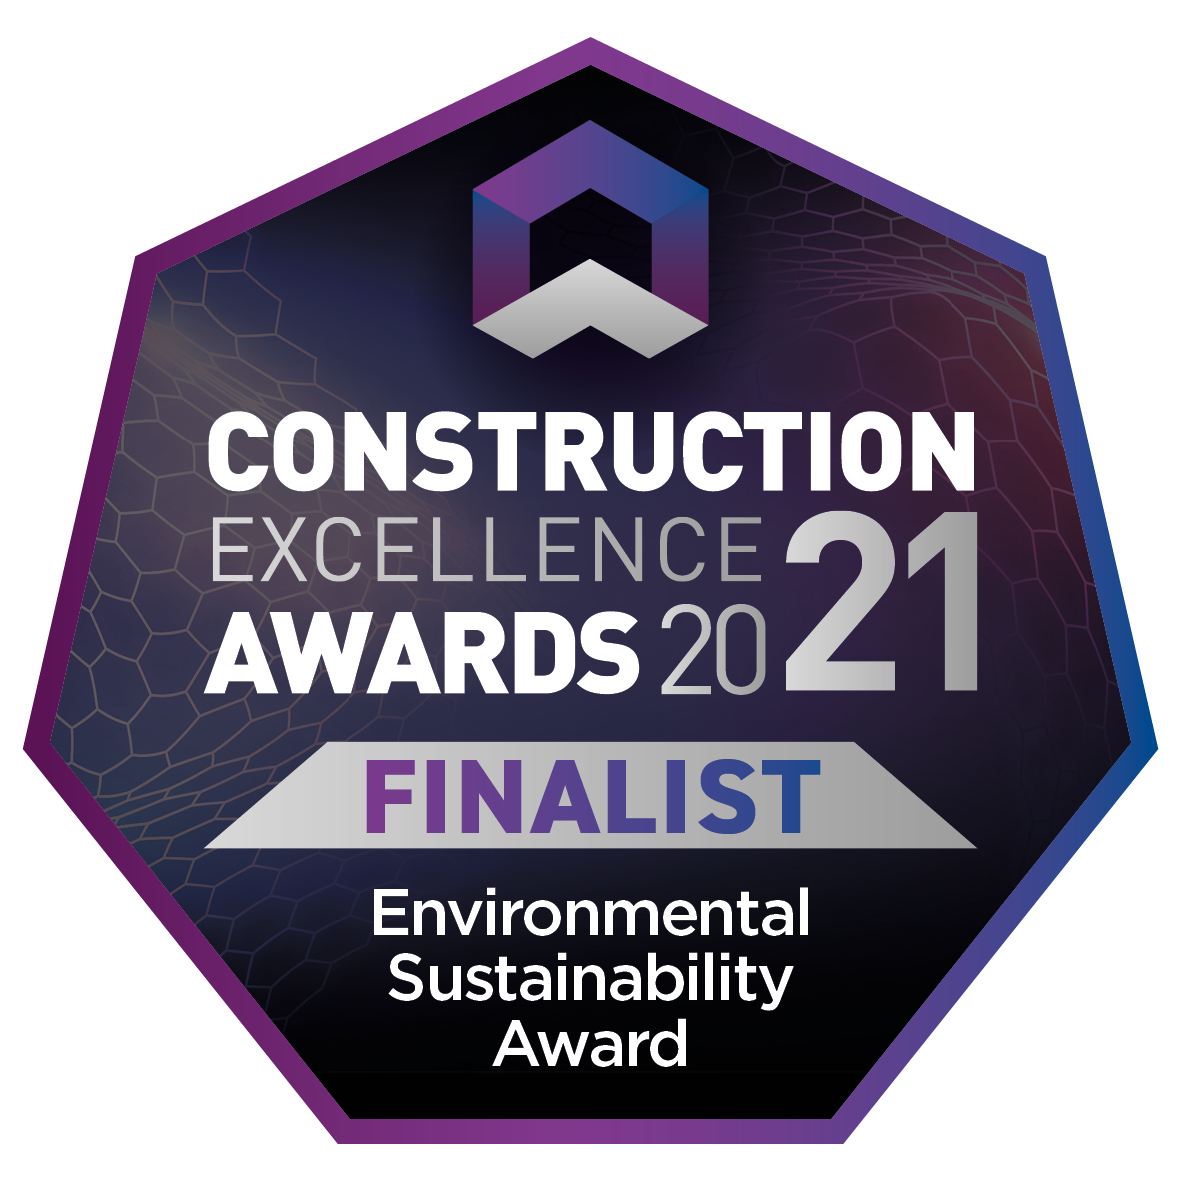 Finalists in the CEF Excellence Awards 2021 for Environmental Sustainability